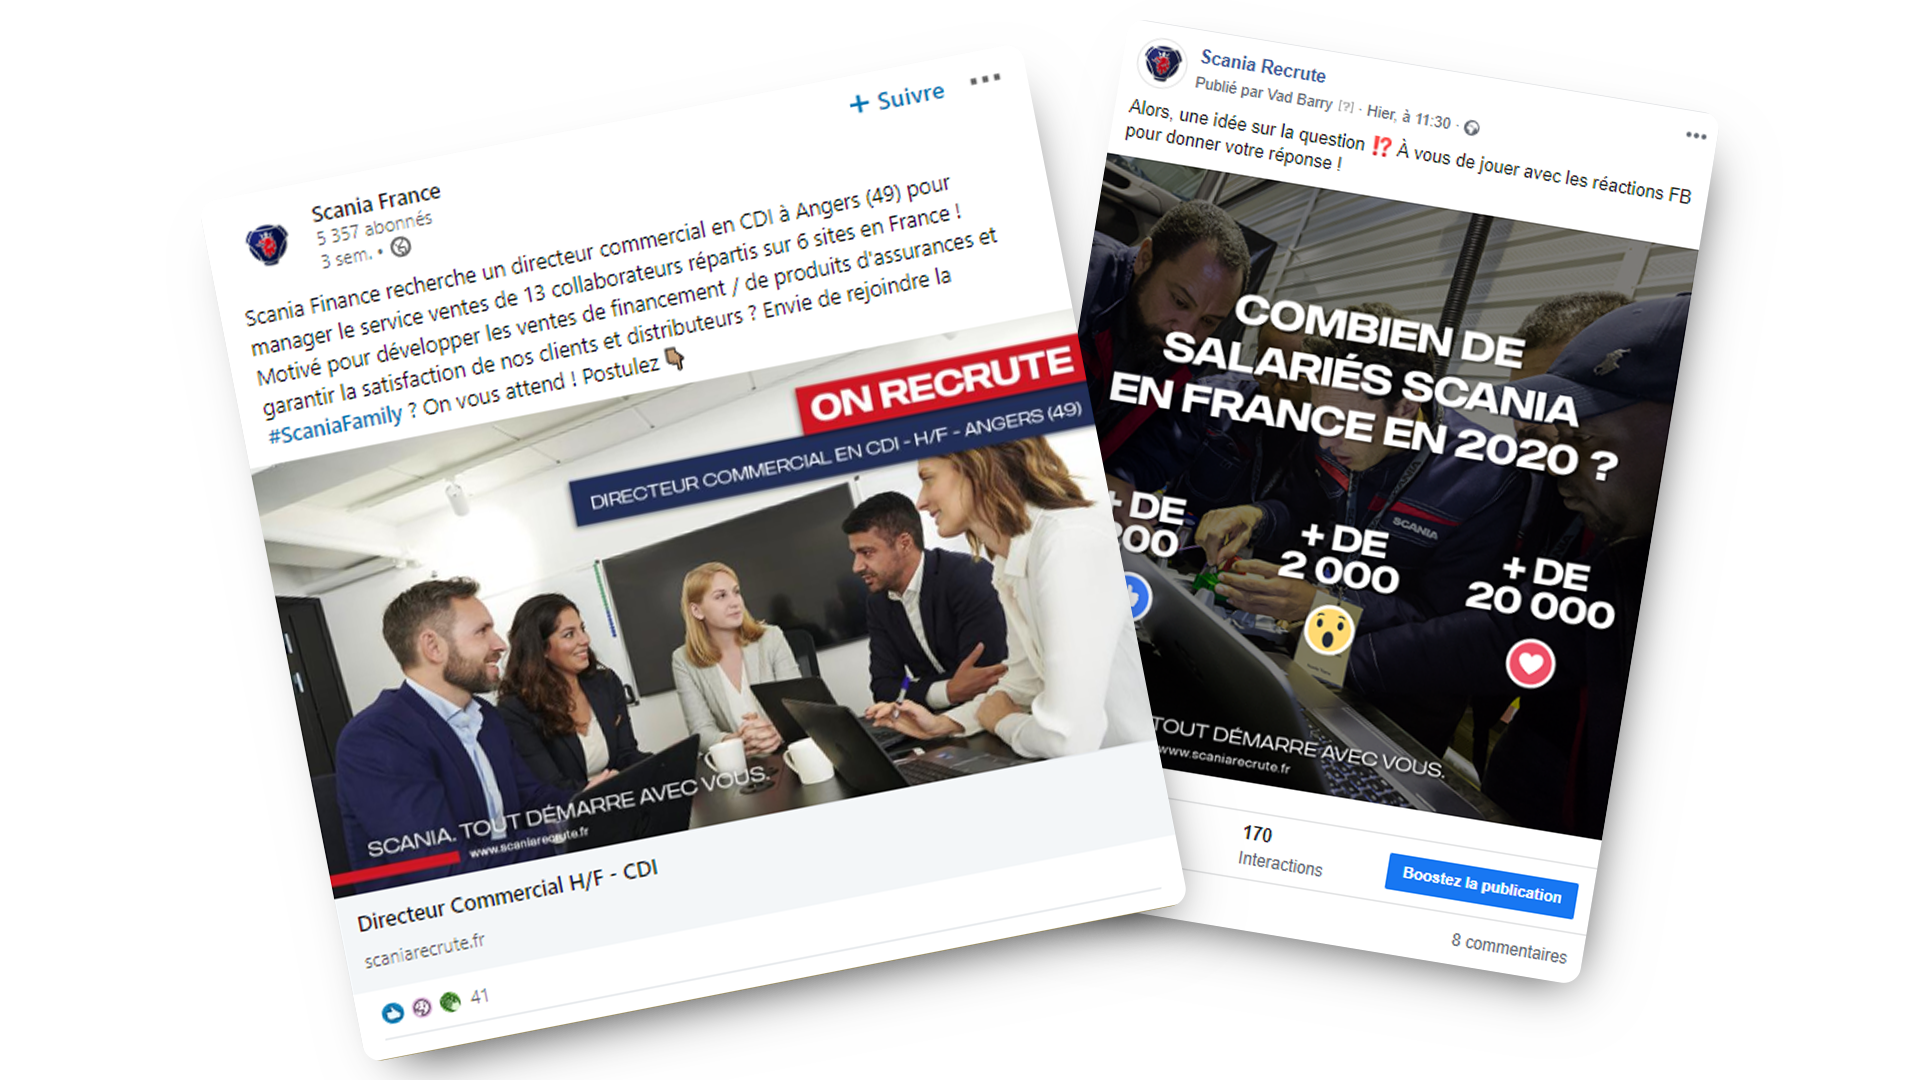 Posts Facebook Scania Recrute